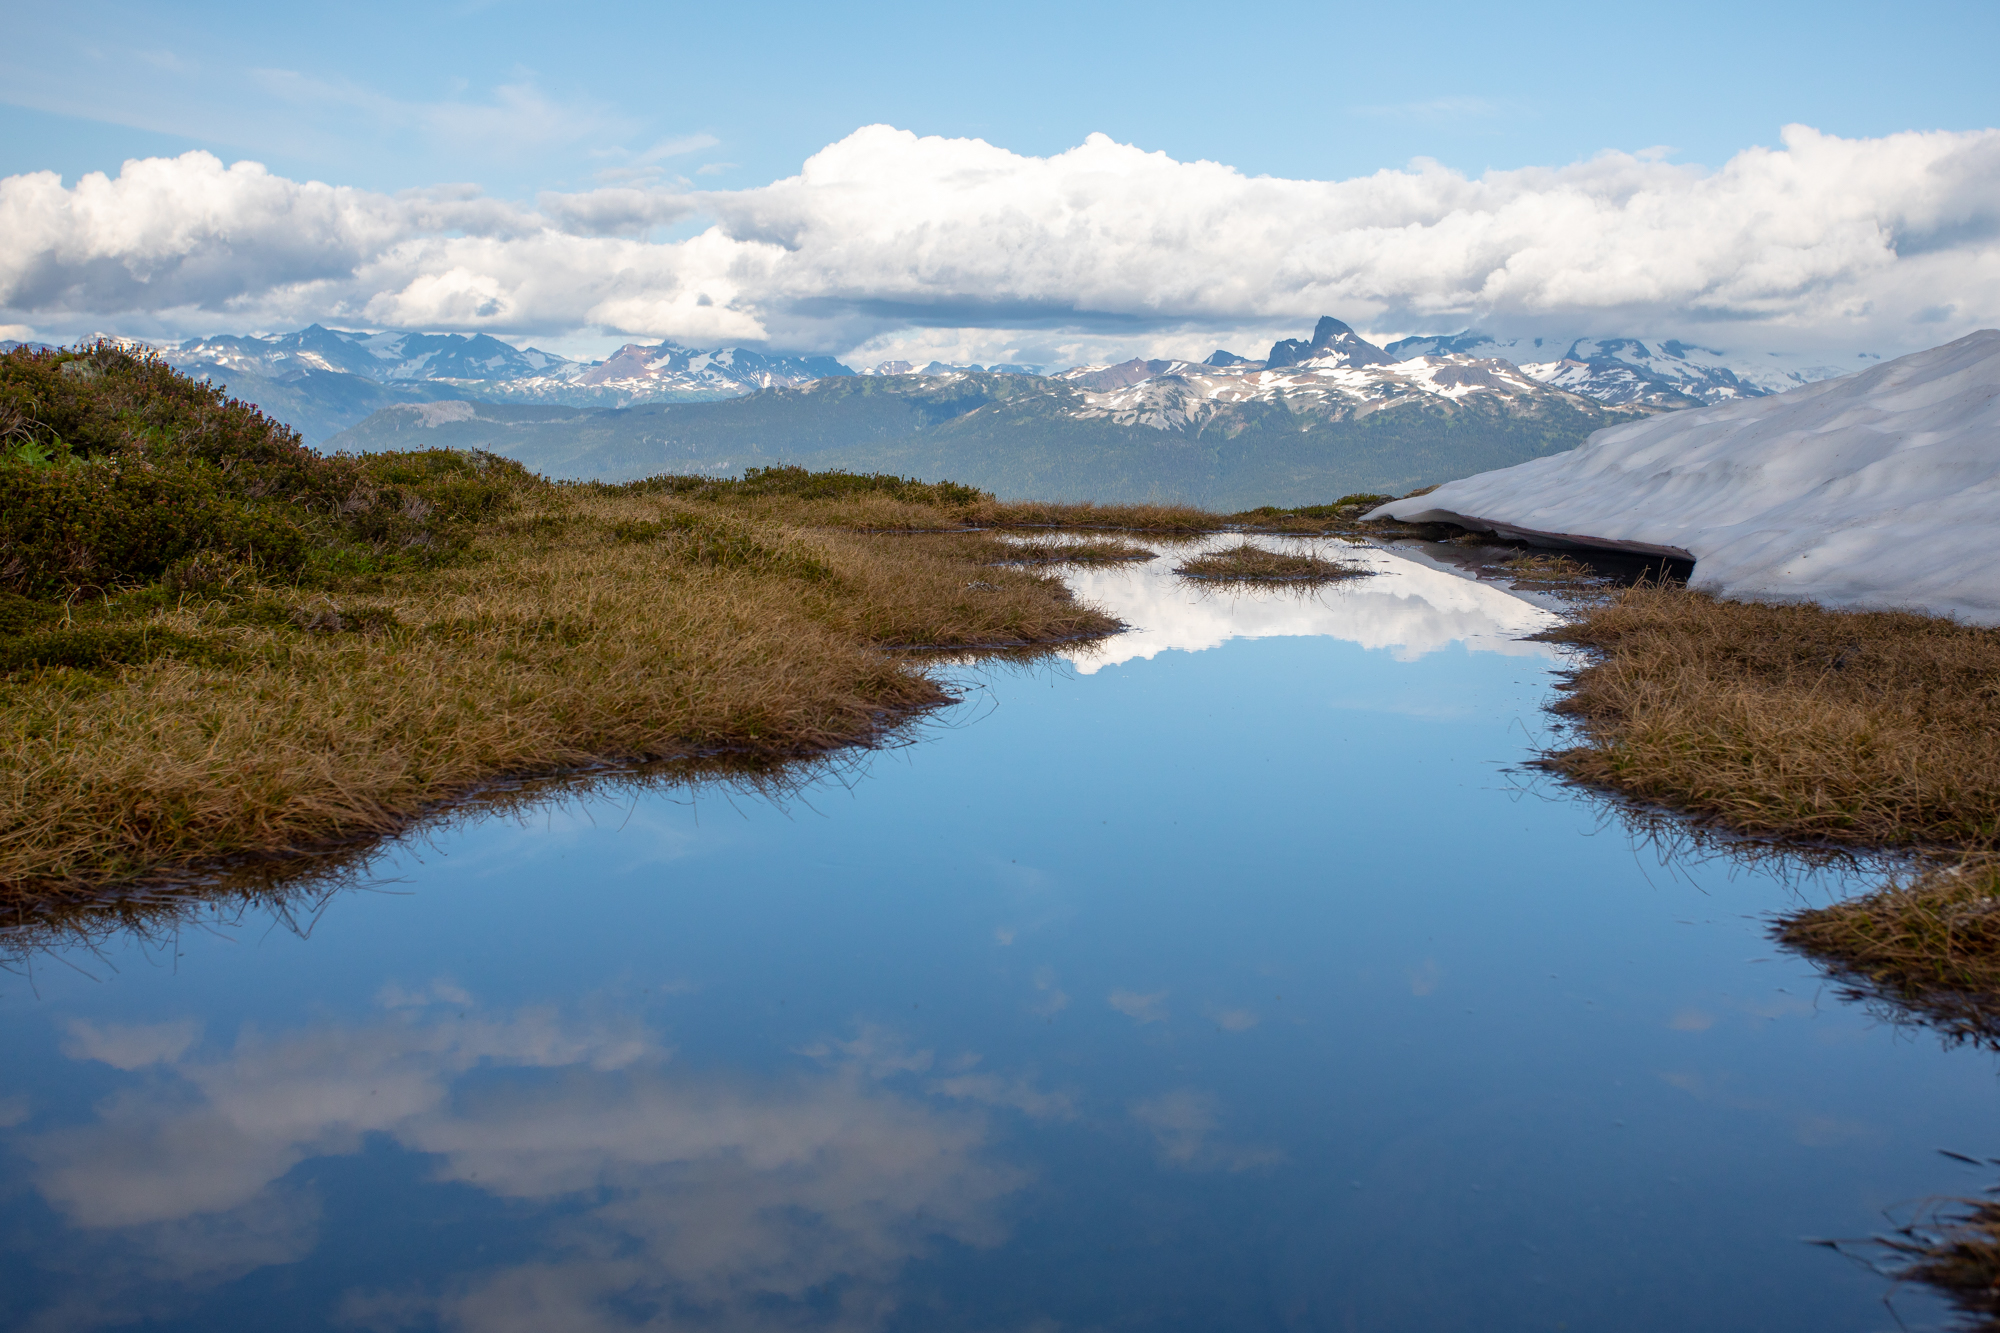 Reflecting pools high in the alpine